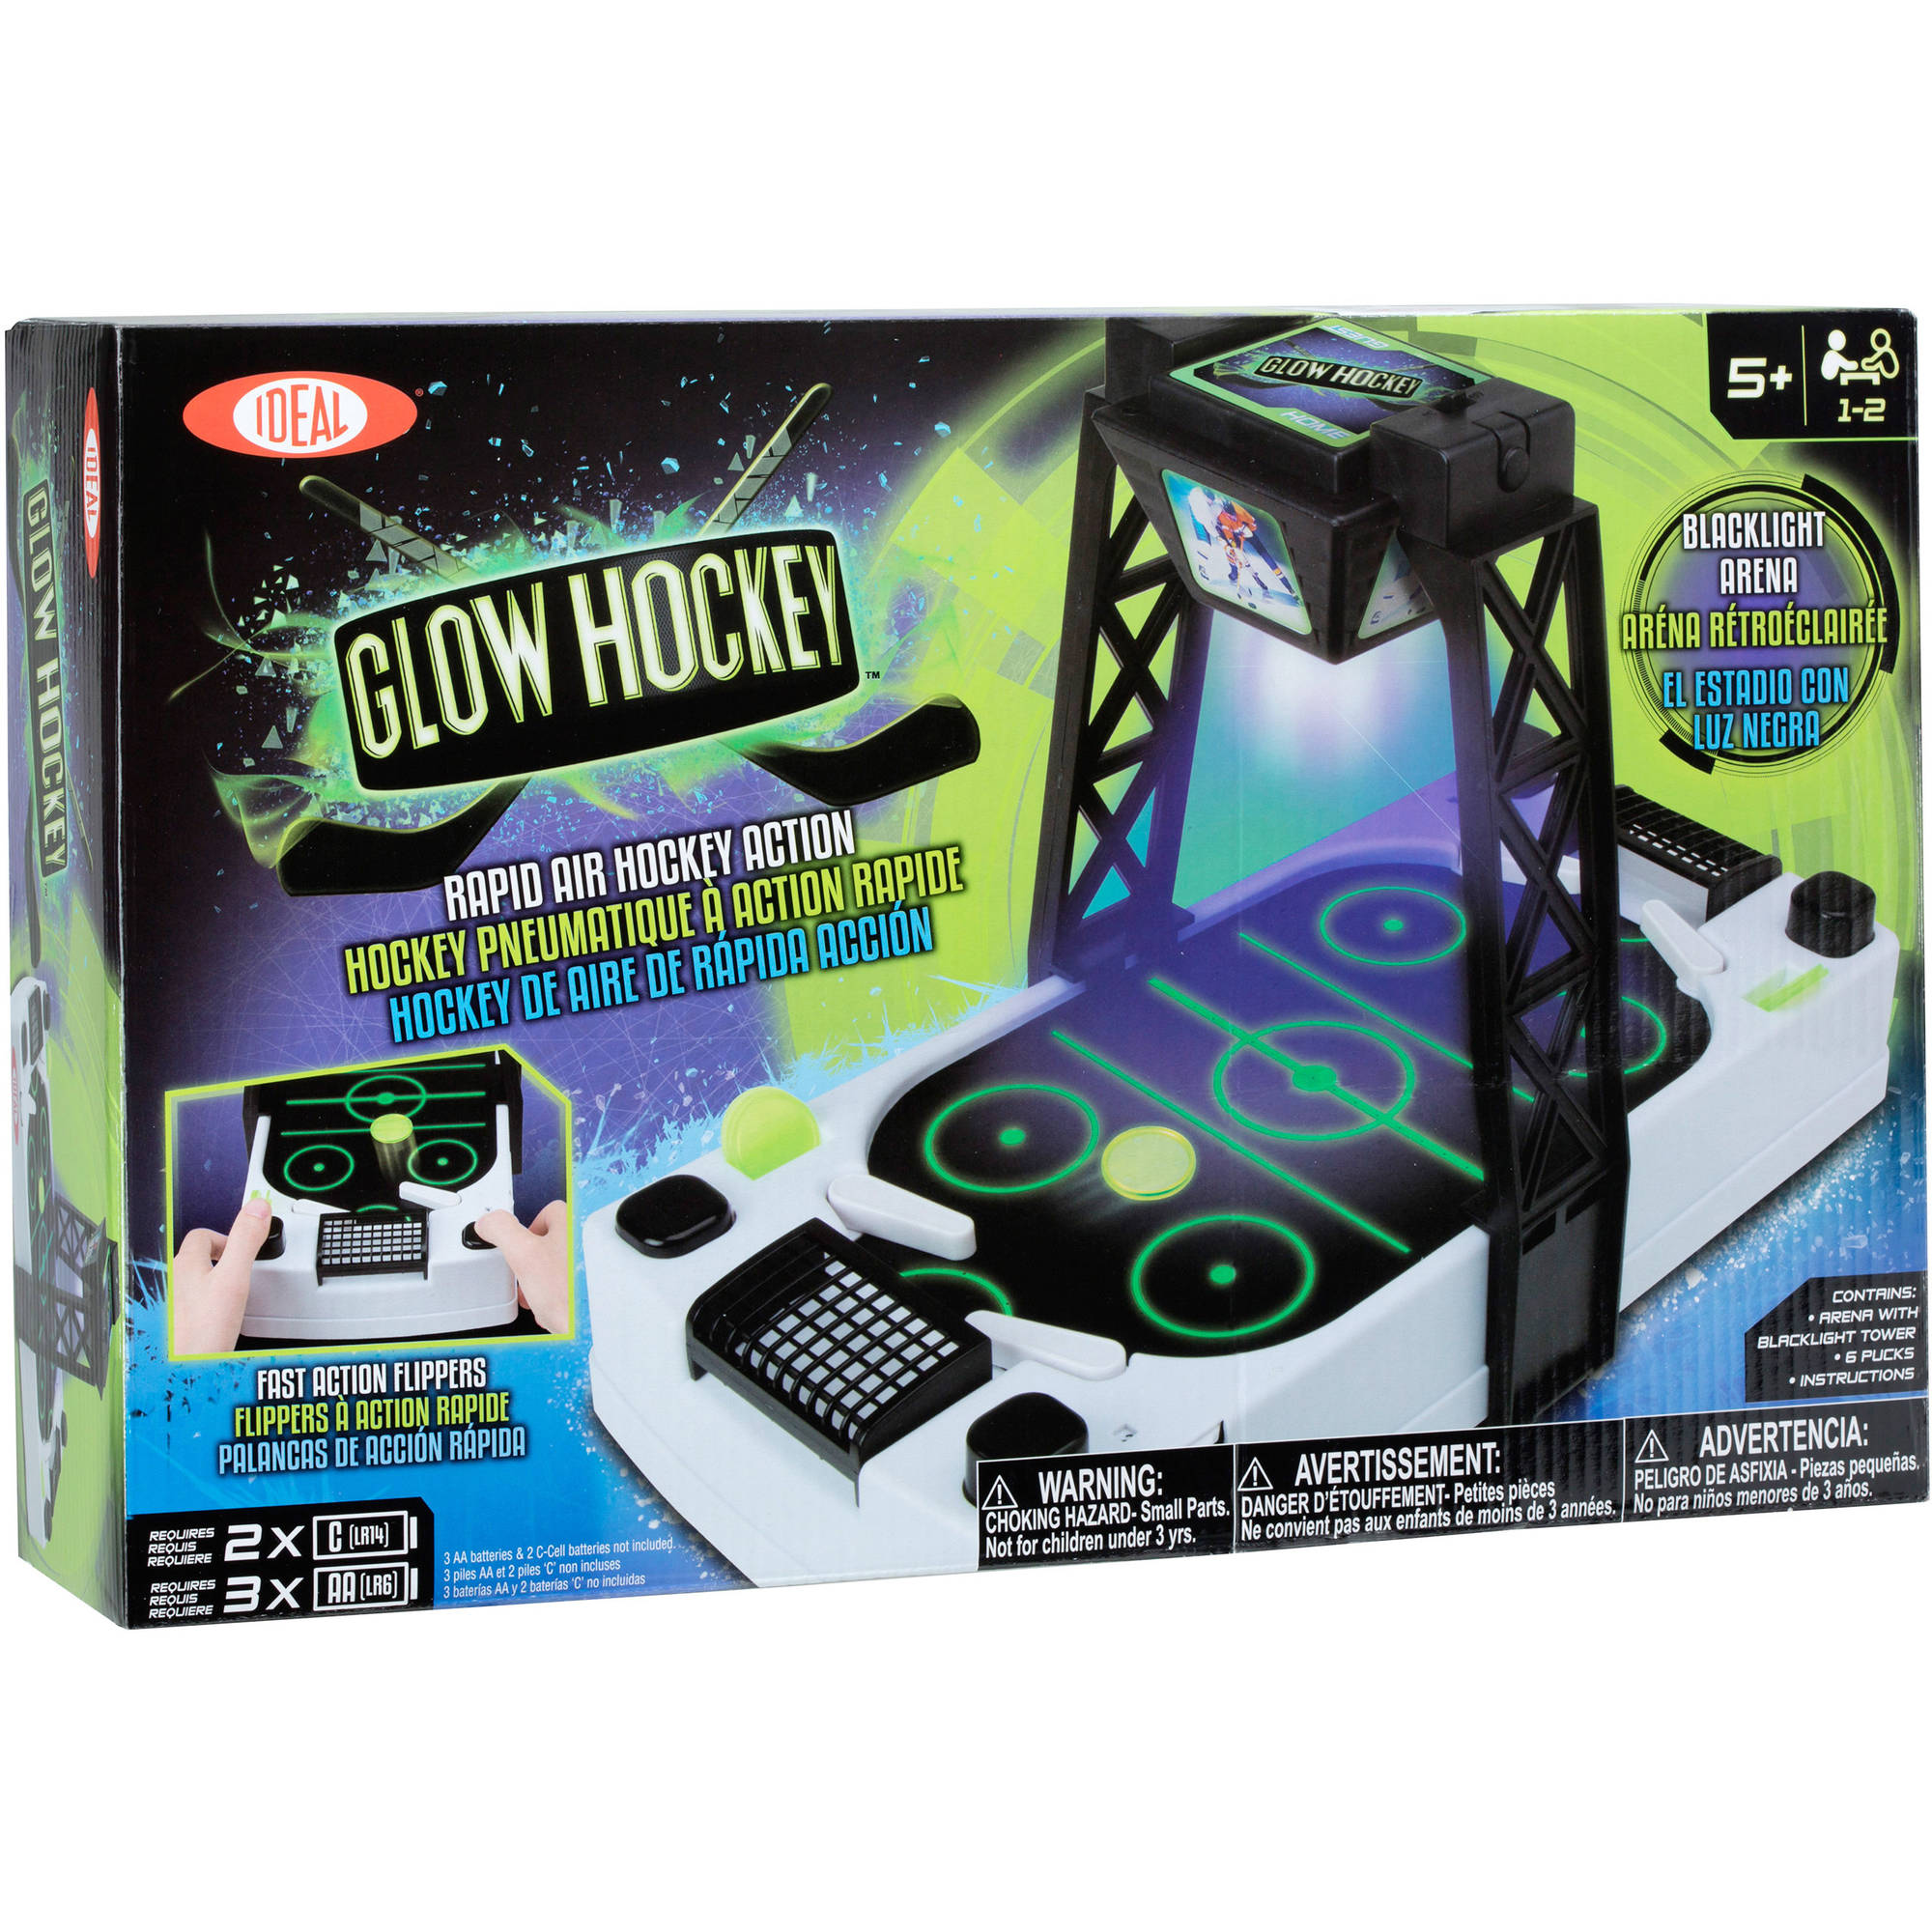 Ideal Glow Hockey by Poof - Slinky